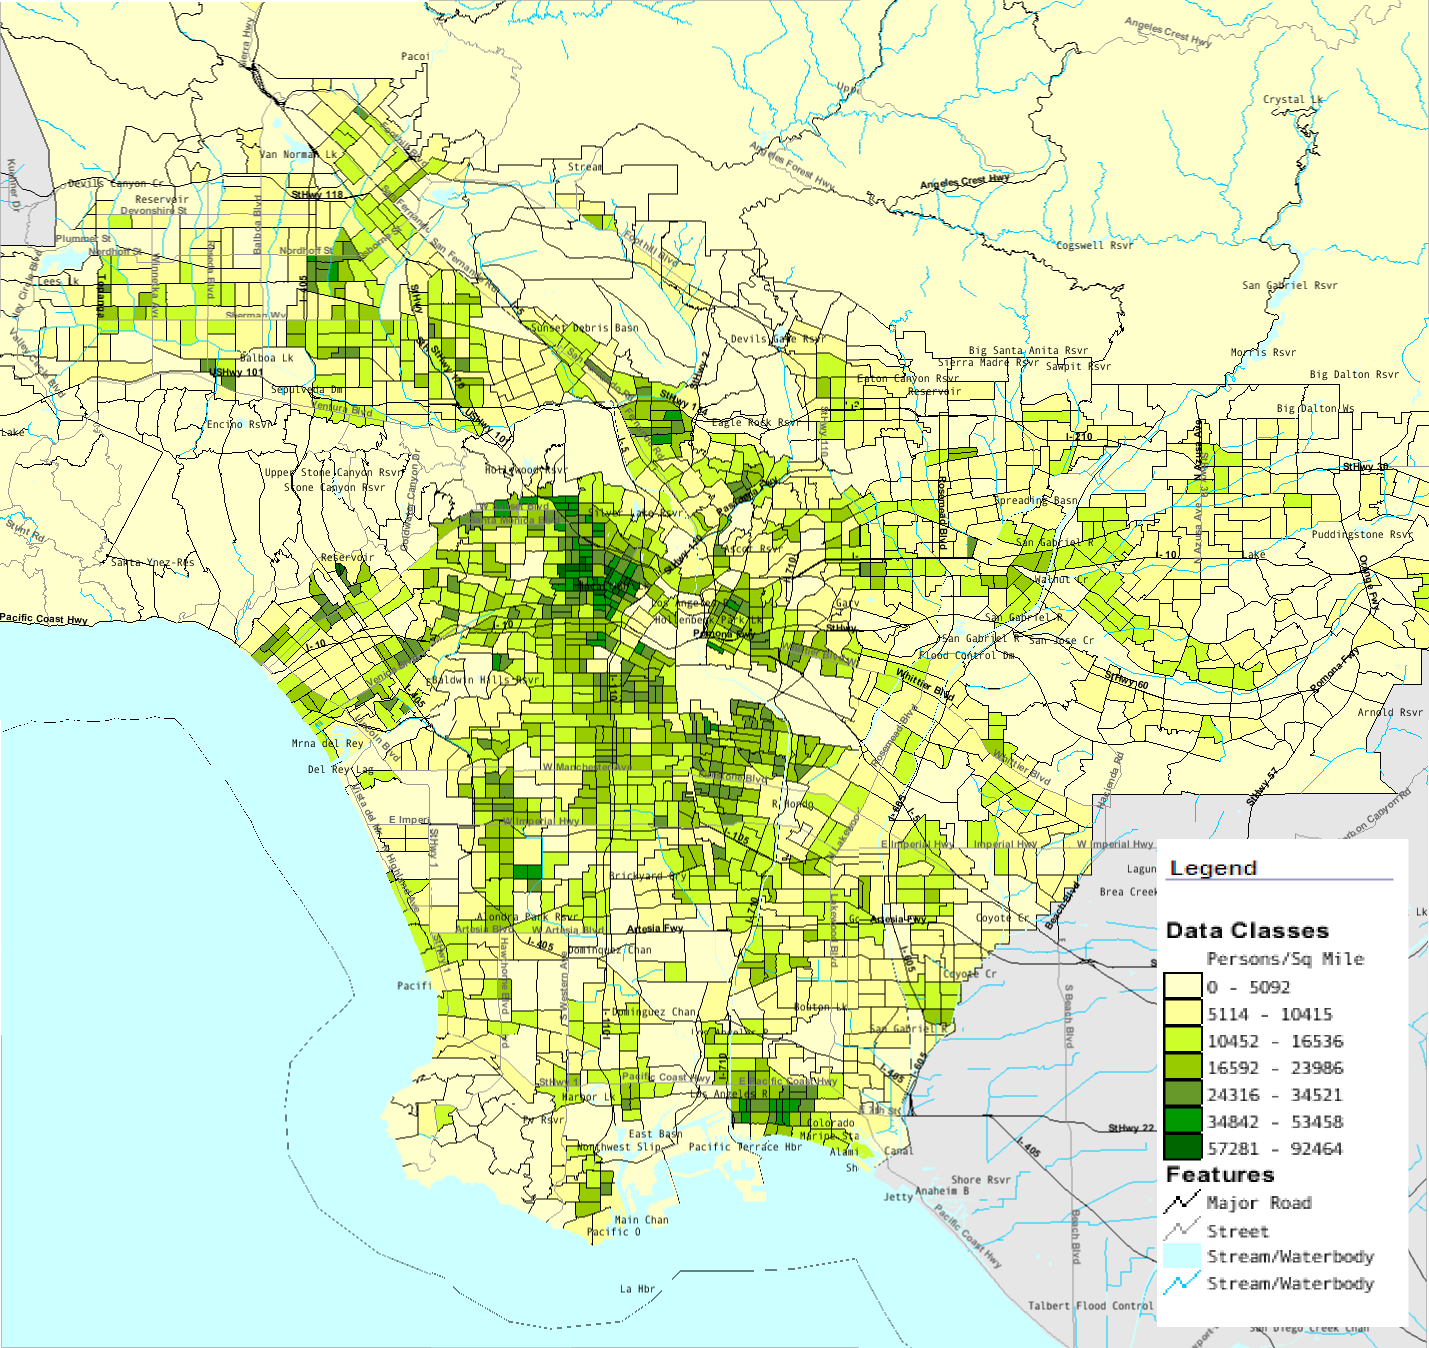 Does LAs Interstate  Split The City The Case Of Crime OC - Los angeles map venice beach